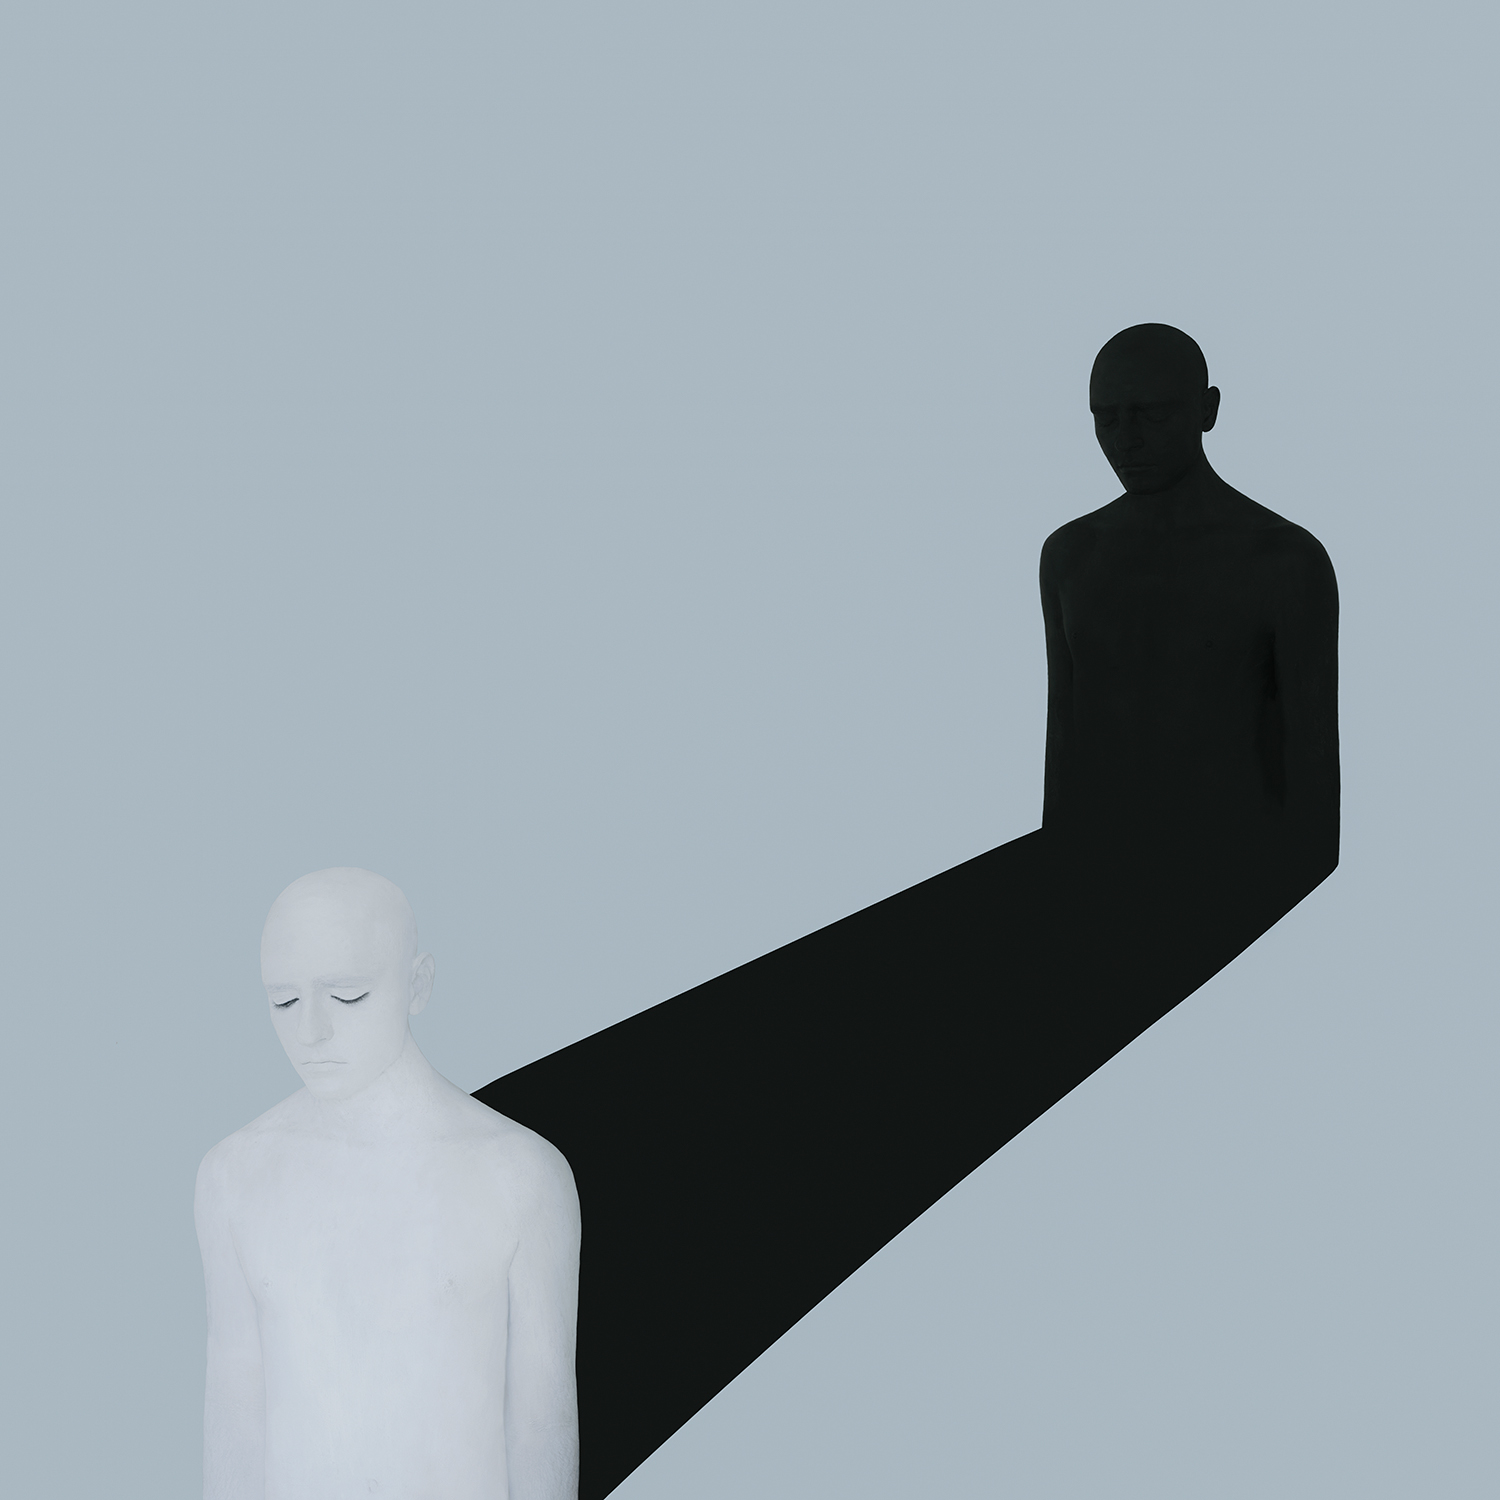 The_Shadow_and_the_Self_06.jpg